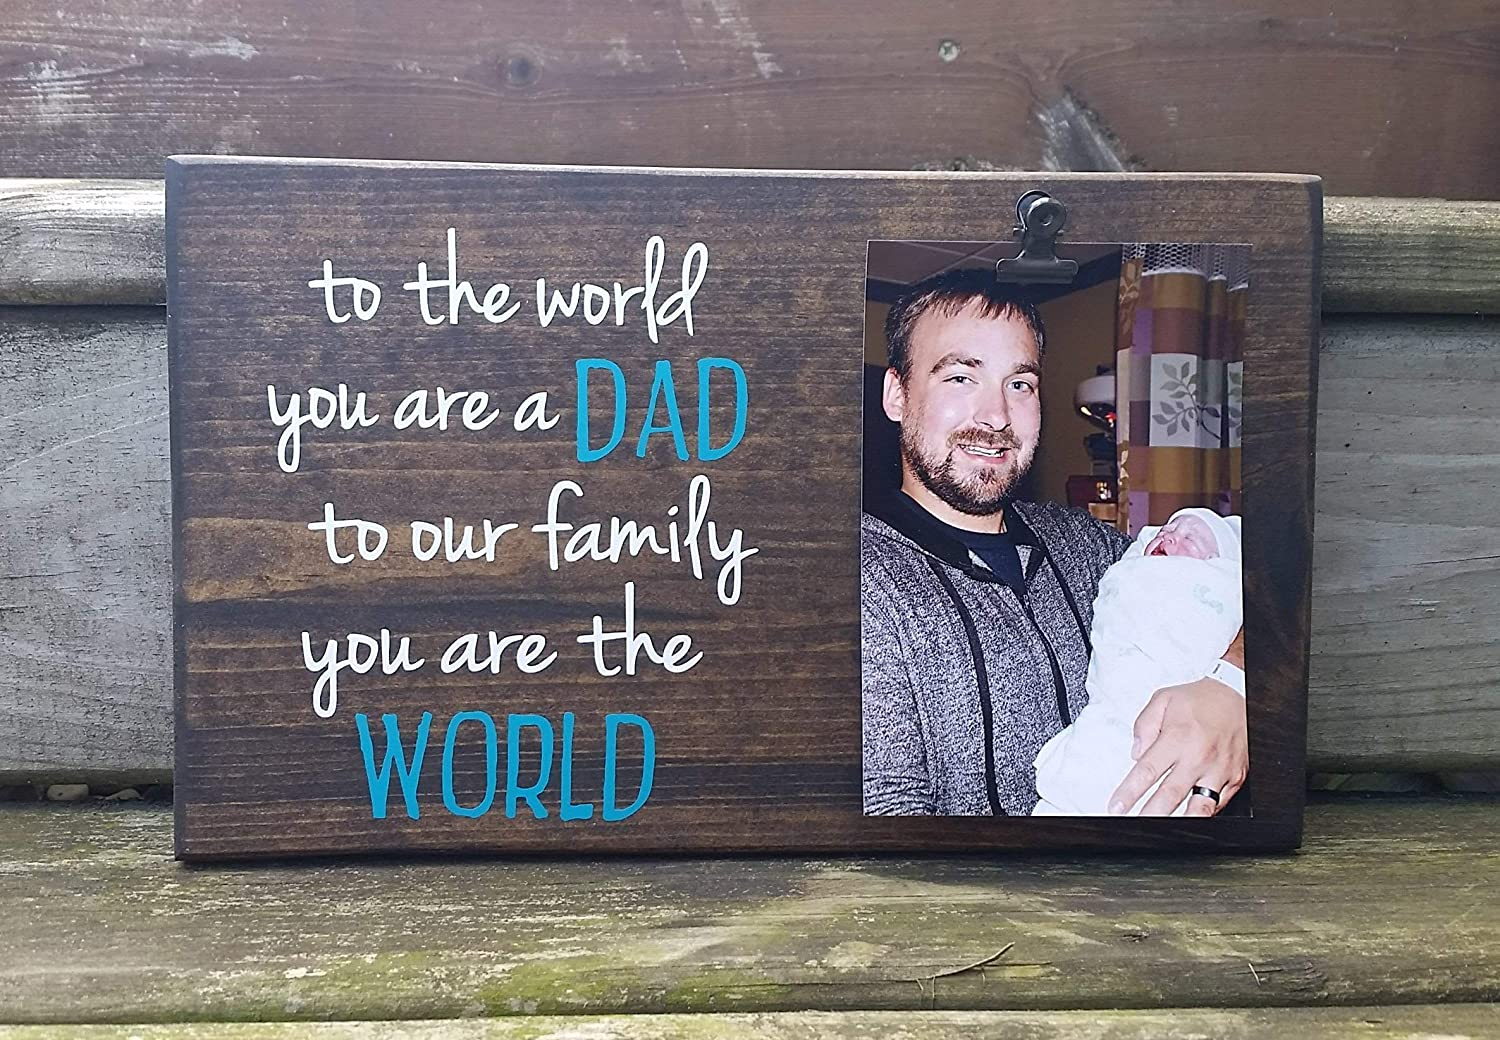 To the World you are a our Gorgeous but DAD to WORLD. family quality assurance